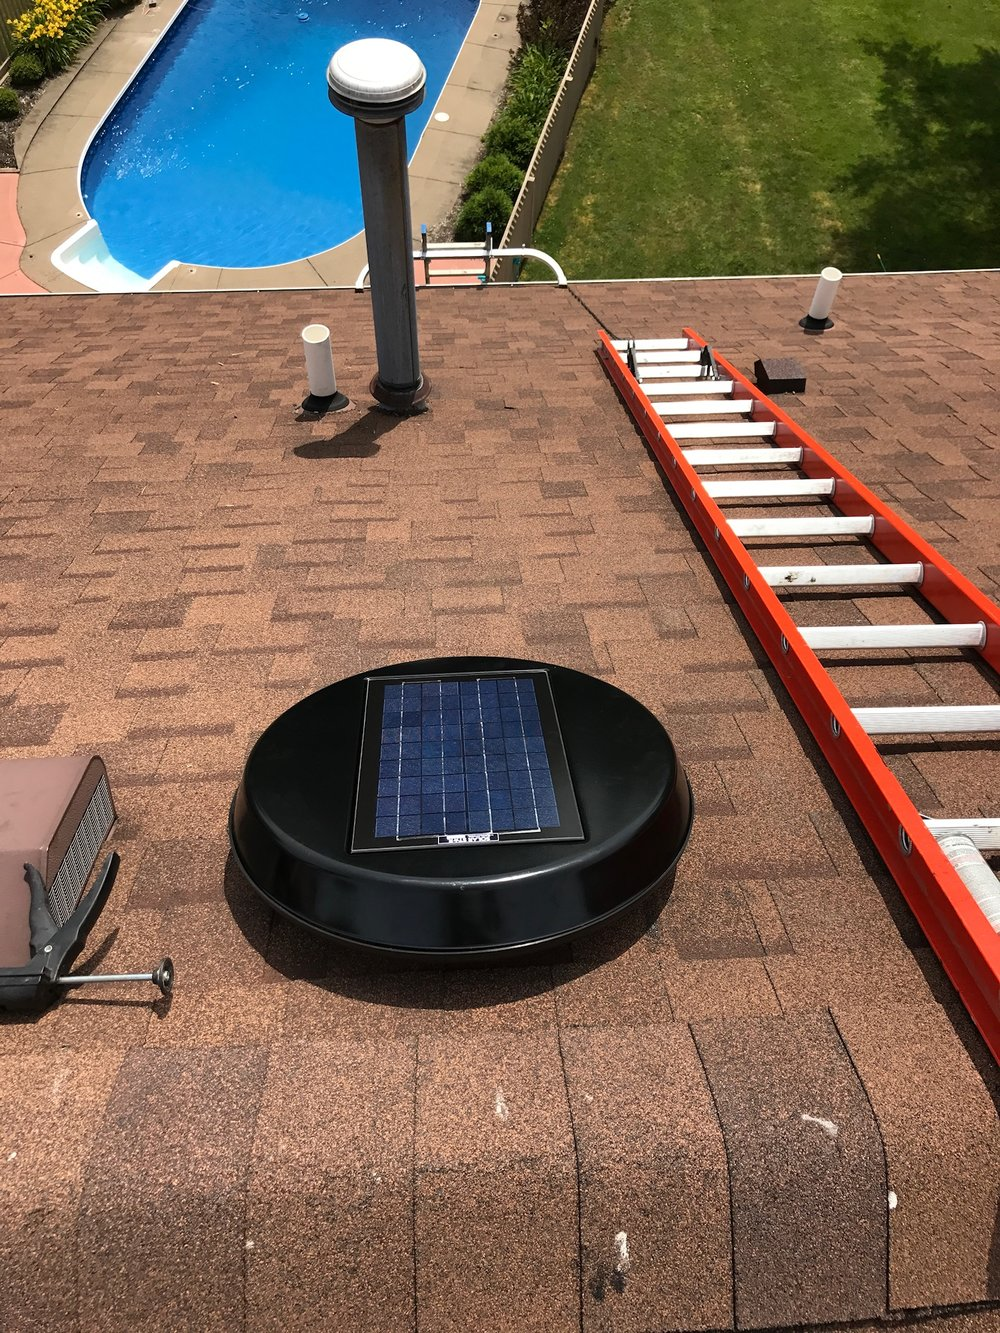 Solar Powered Attic Fan - A very GREEN way to help keep your home cool in the summer...